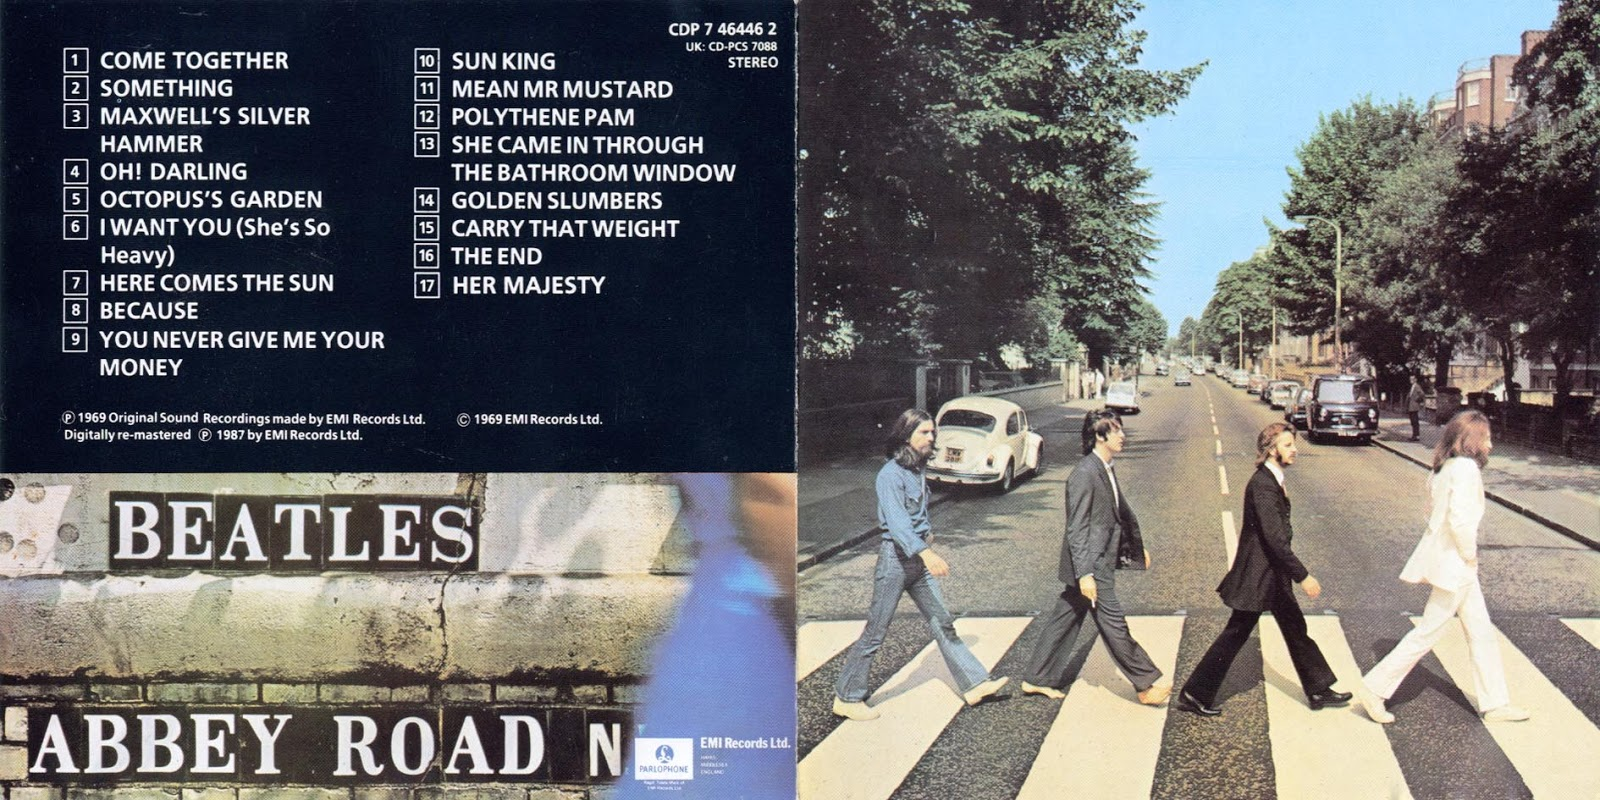 Many People Argue That The Last Album Was Beatles Let It Be However Songs On Were Recorded Before Abbey Road Band Disbanded In